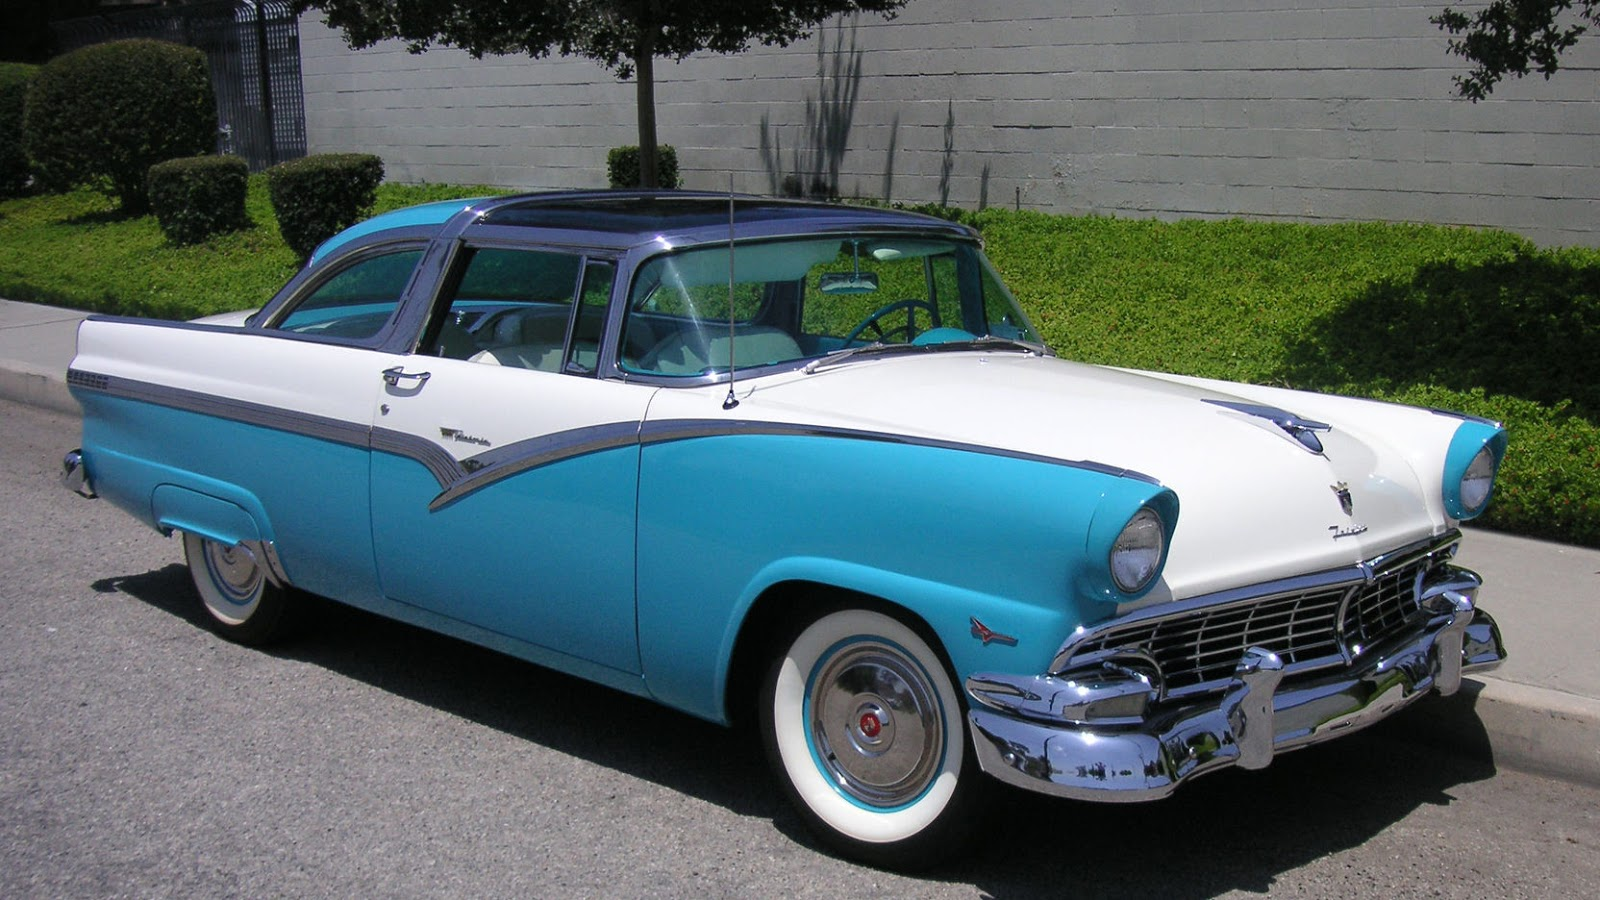 1955 ford fairlane crown victoria blog cars on line - Skyliners For 1956 Were The Same As In 1955 Aside From Superficial Model Year Facelift Changes Mecum Auctions Photo